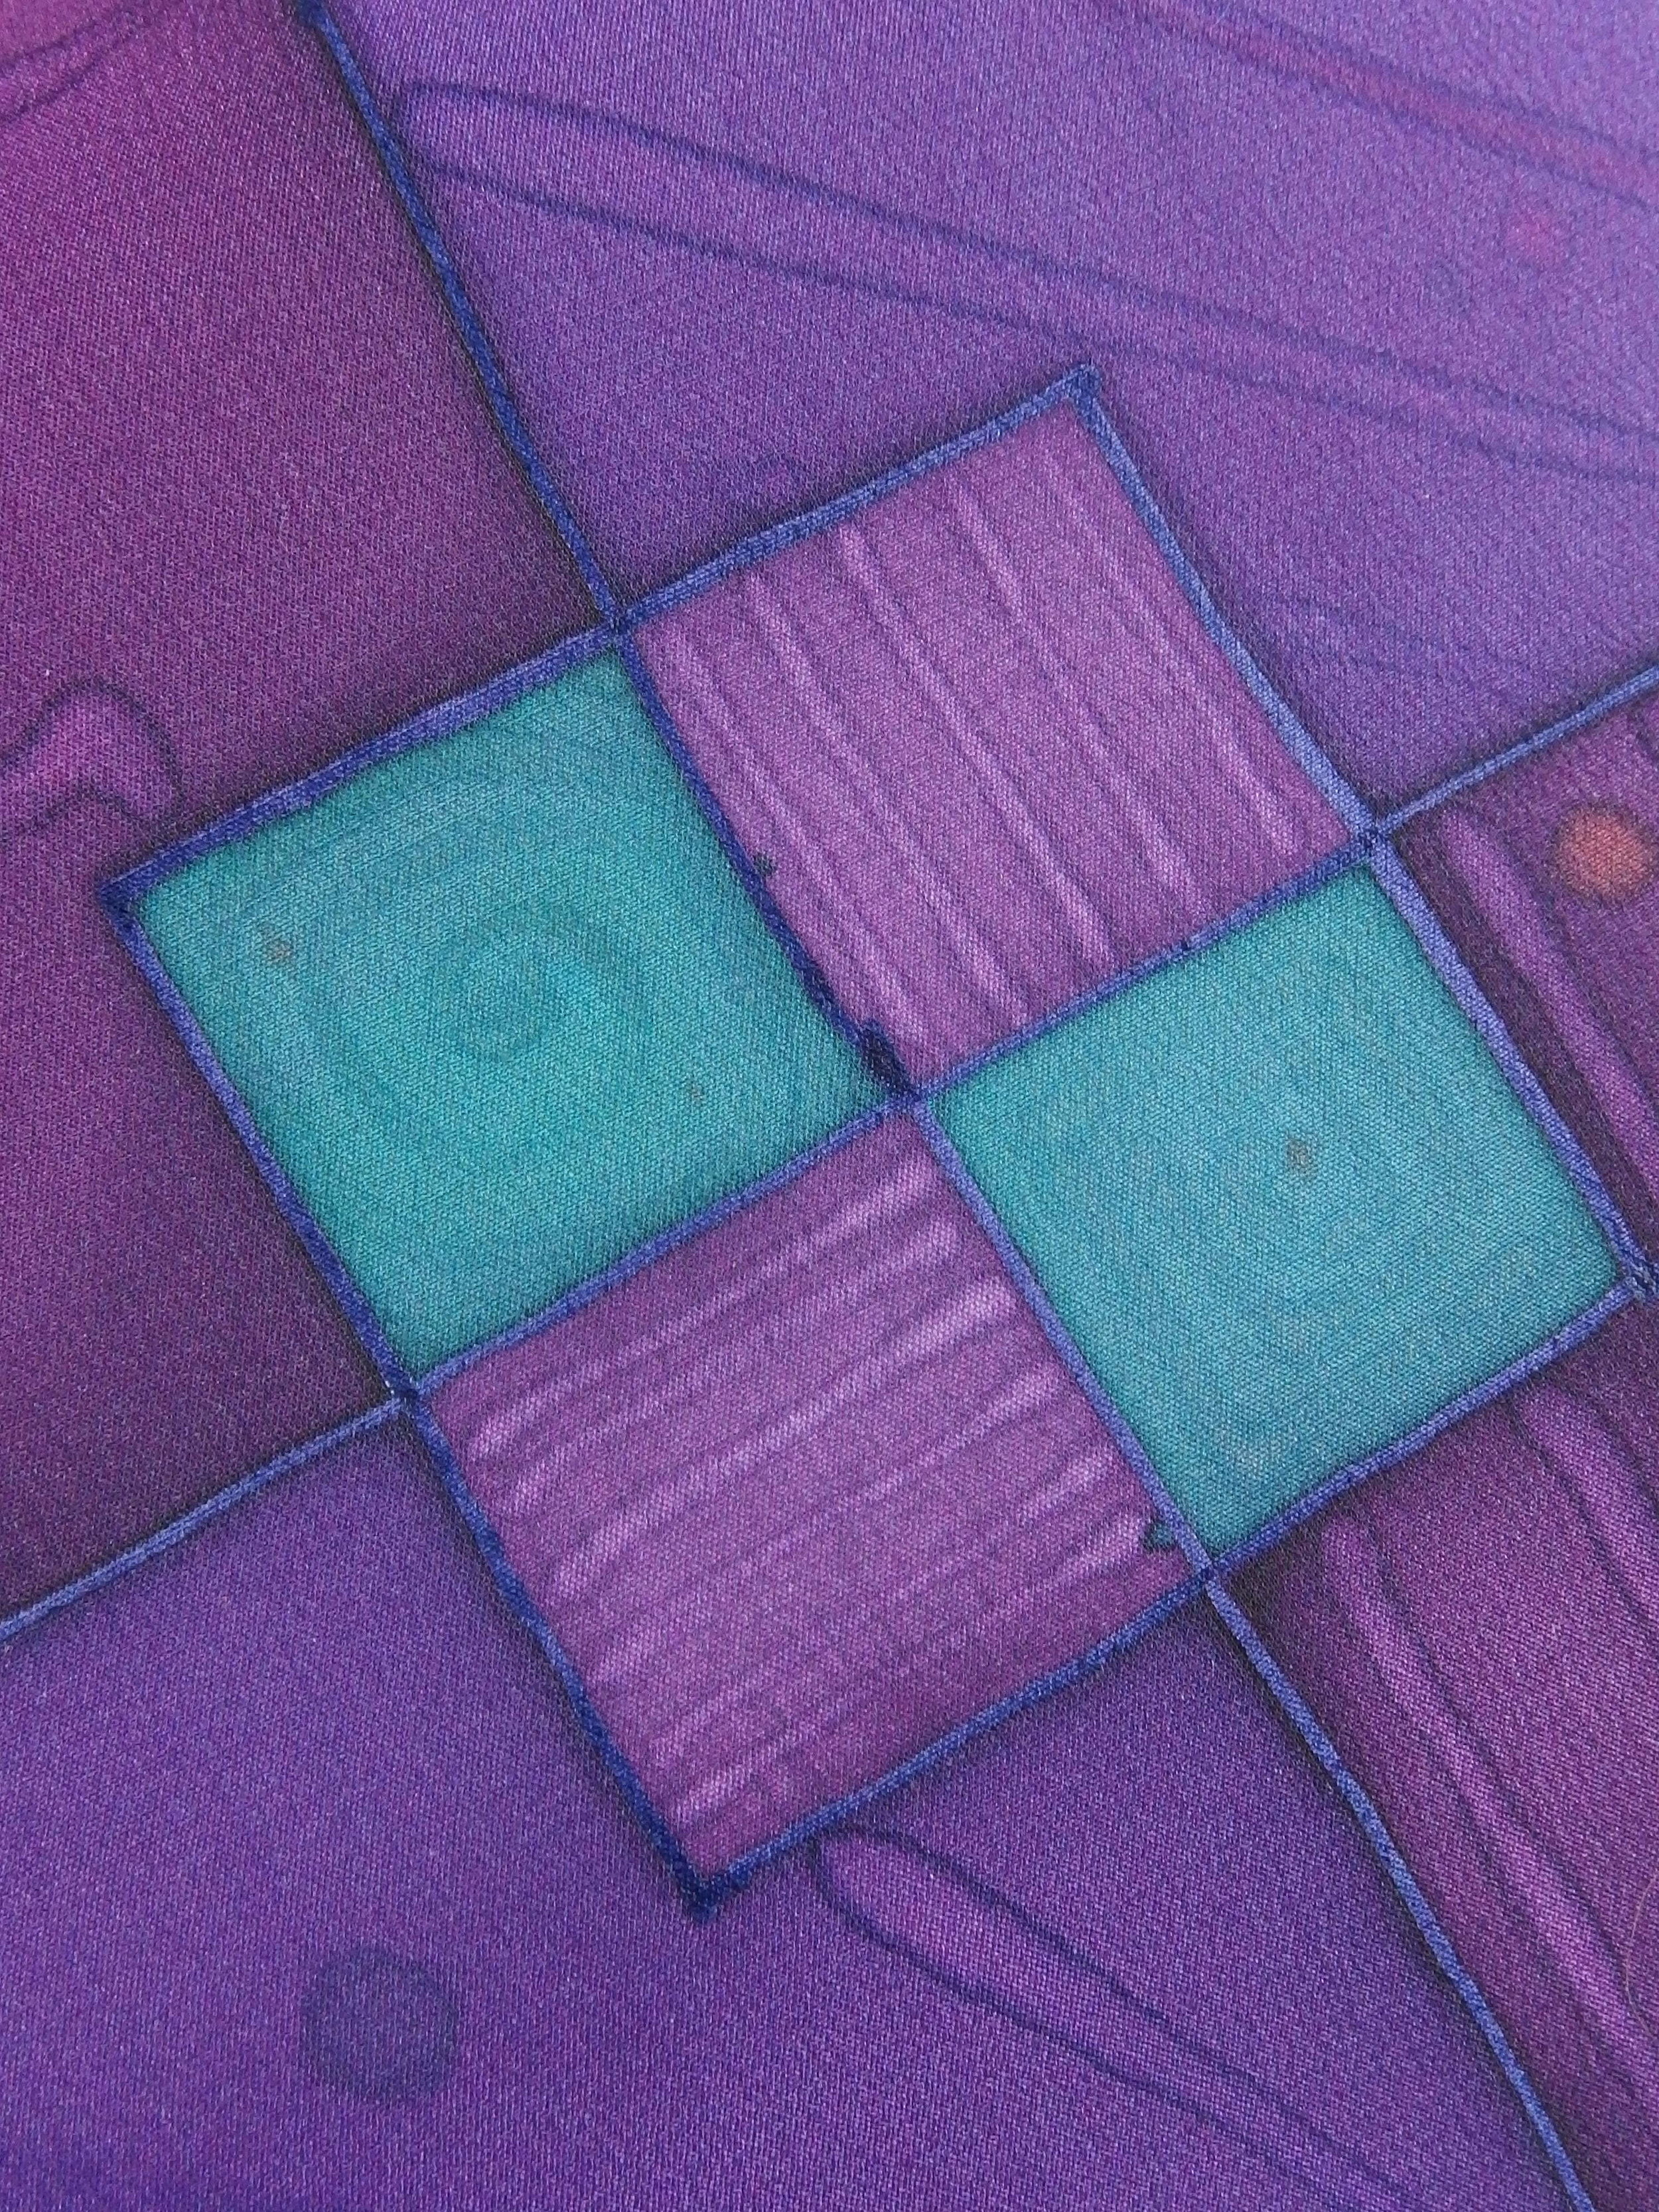 Detail from Squares commission